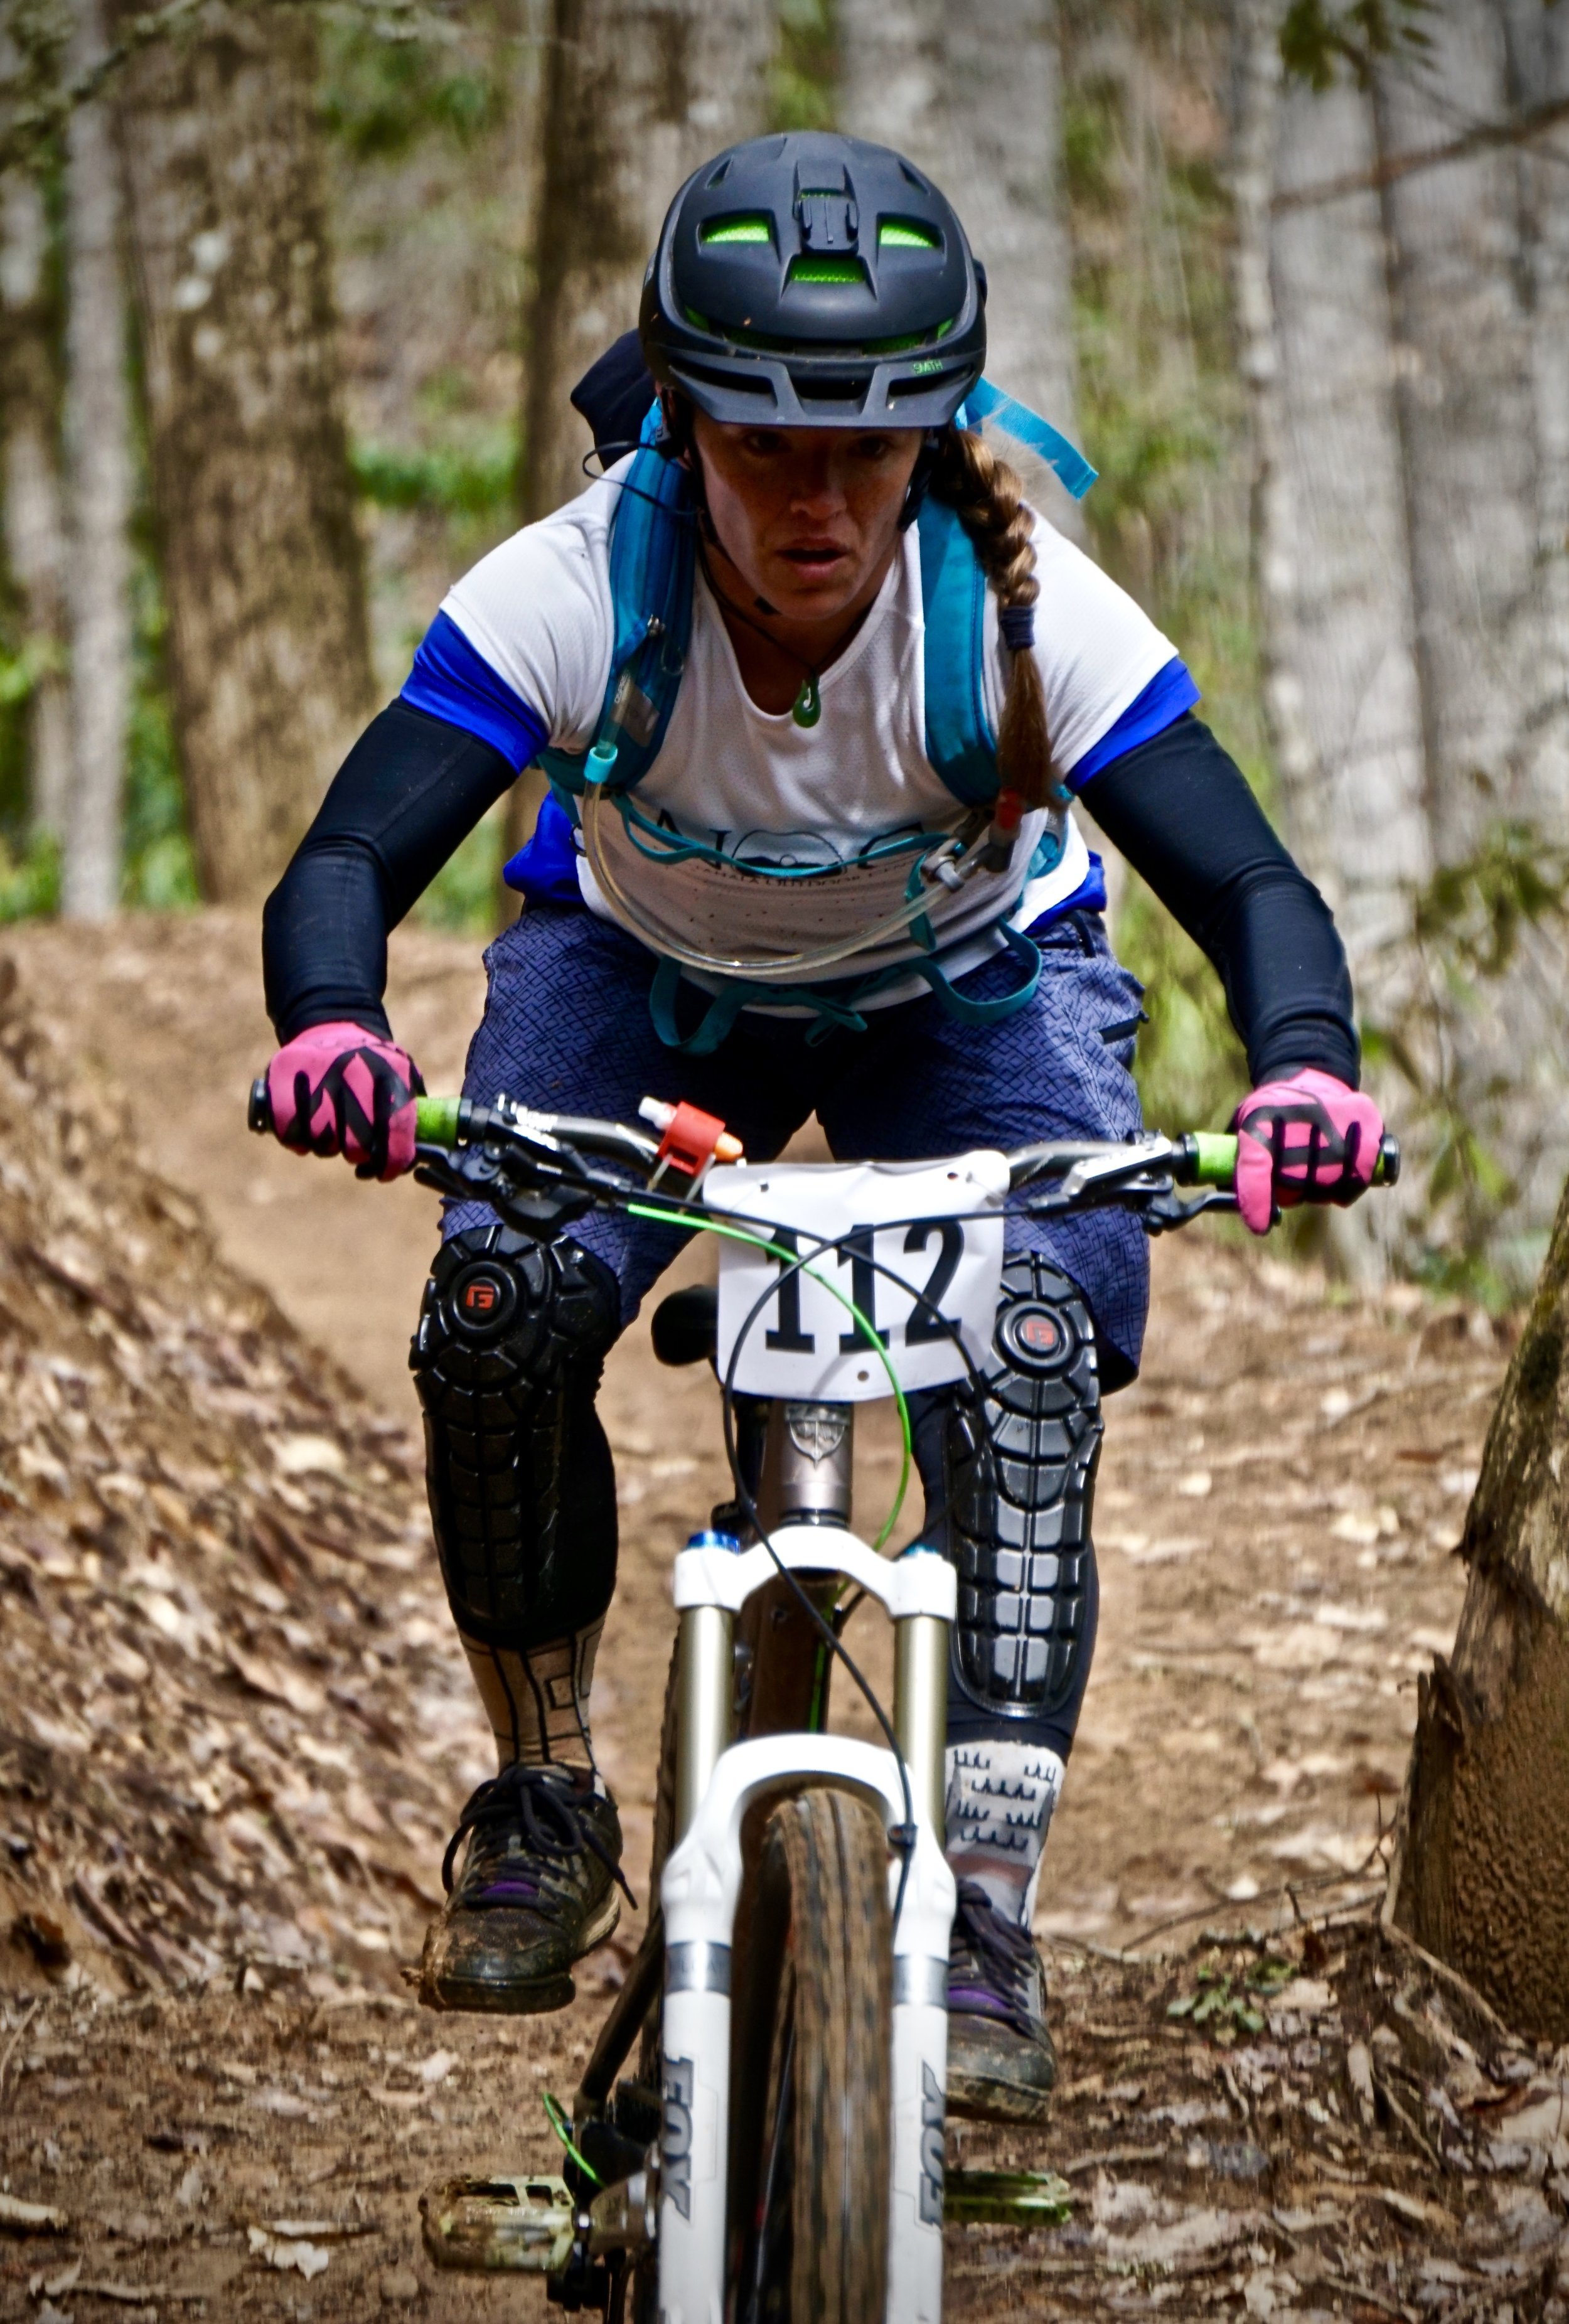 Adriene competing in her first mountain bike race. Photo by: Mark Robertson